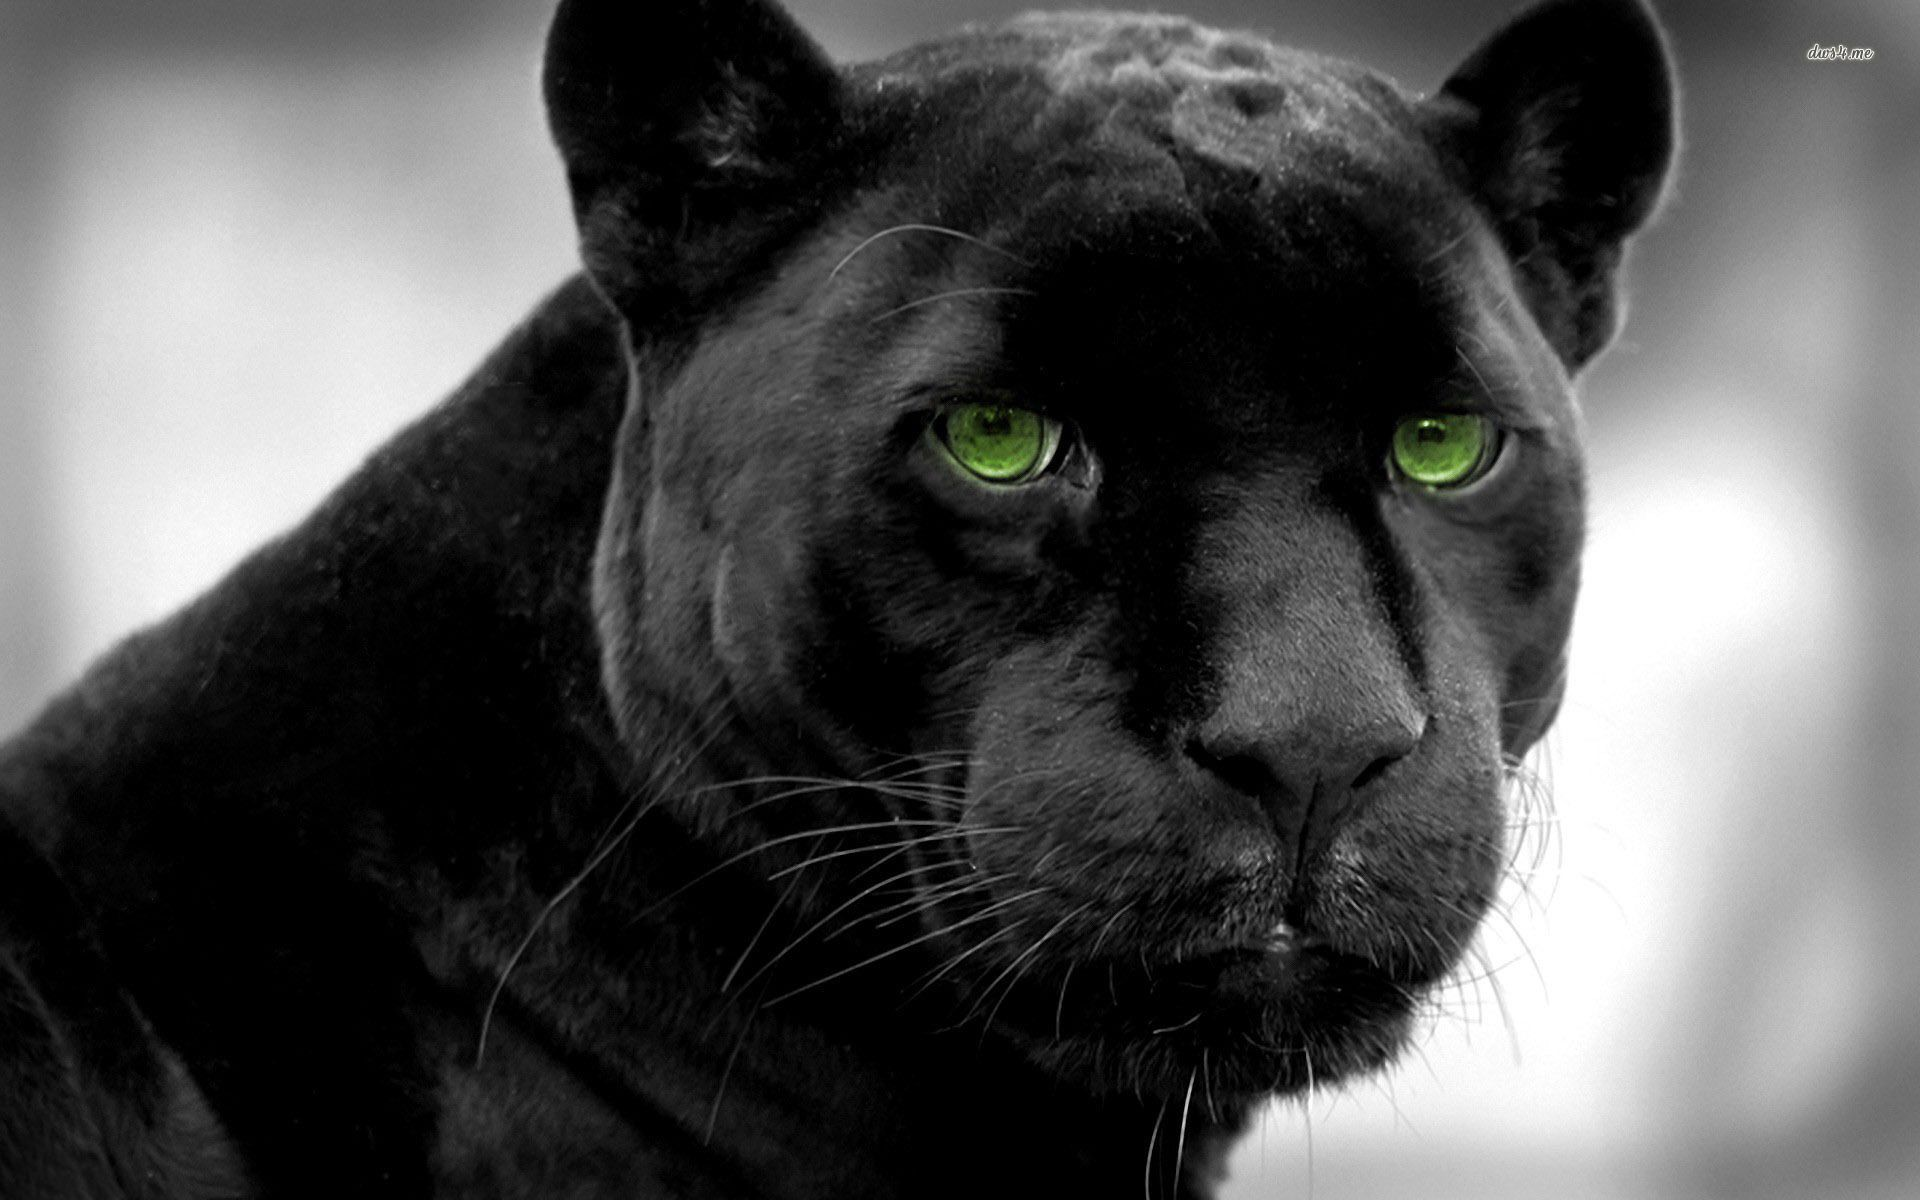 Black Panther Wallpapers Black Jaguar Animal Jaguar Animal Black Panther Hd Wallpaper